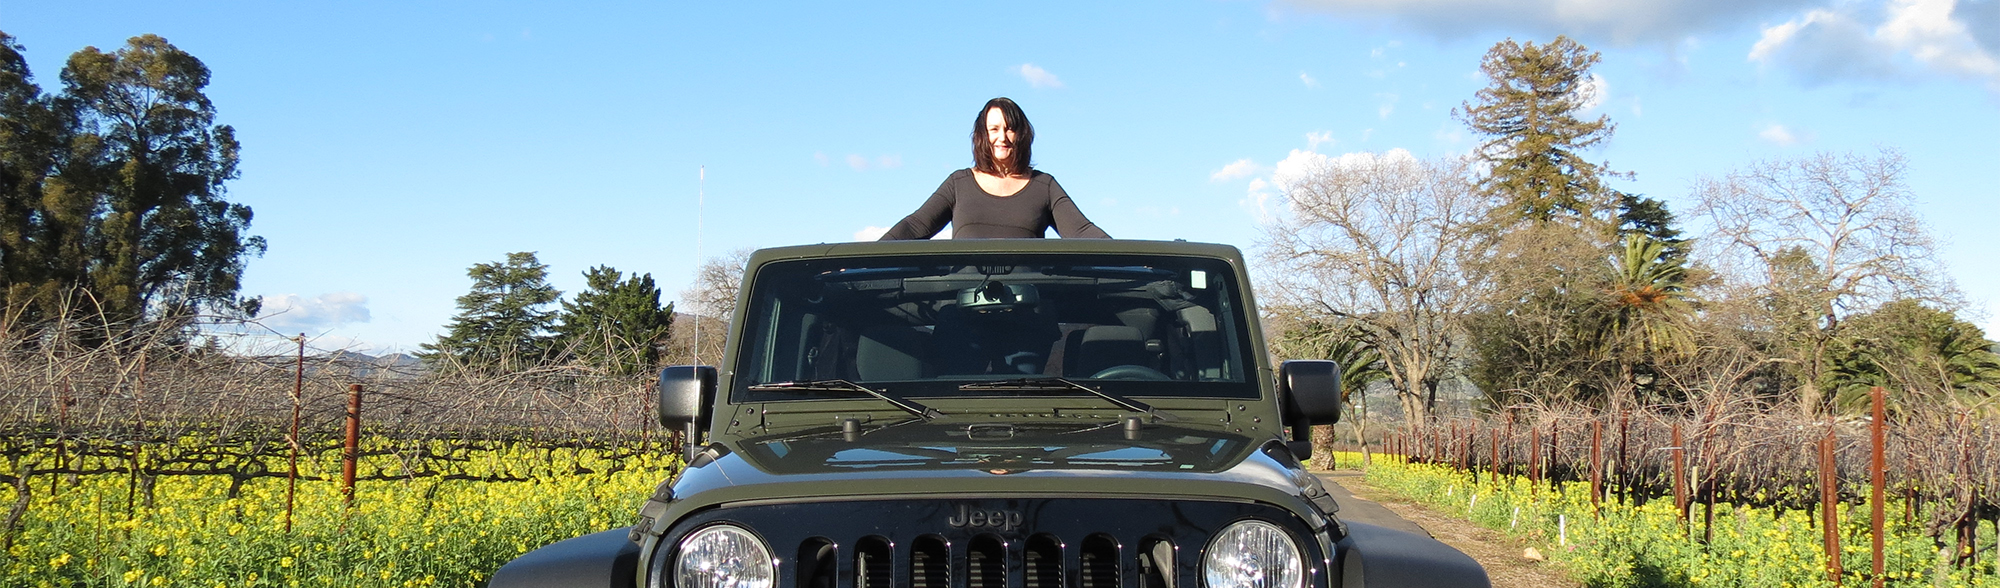 Julie in her jeep